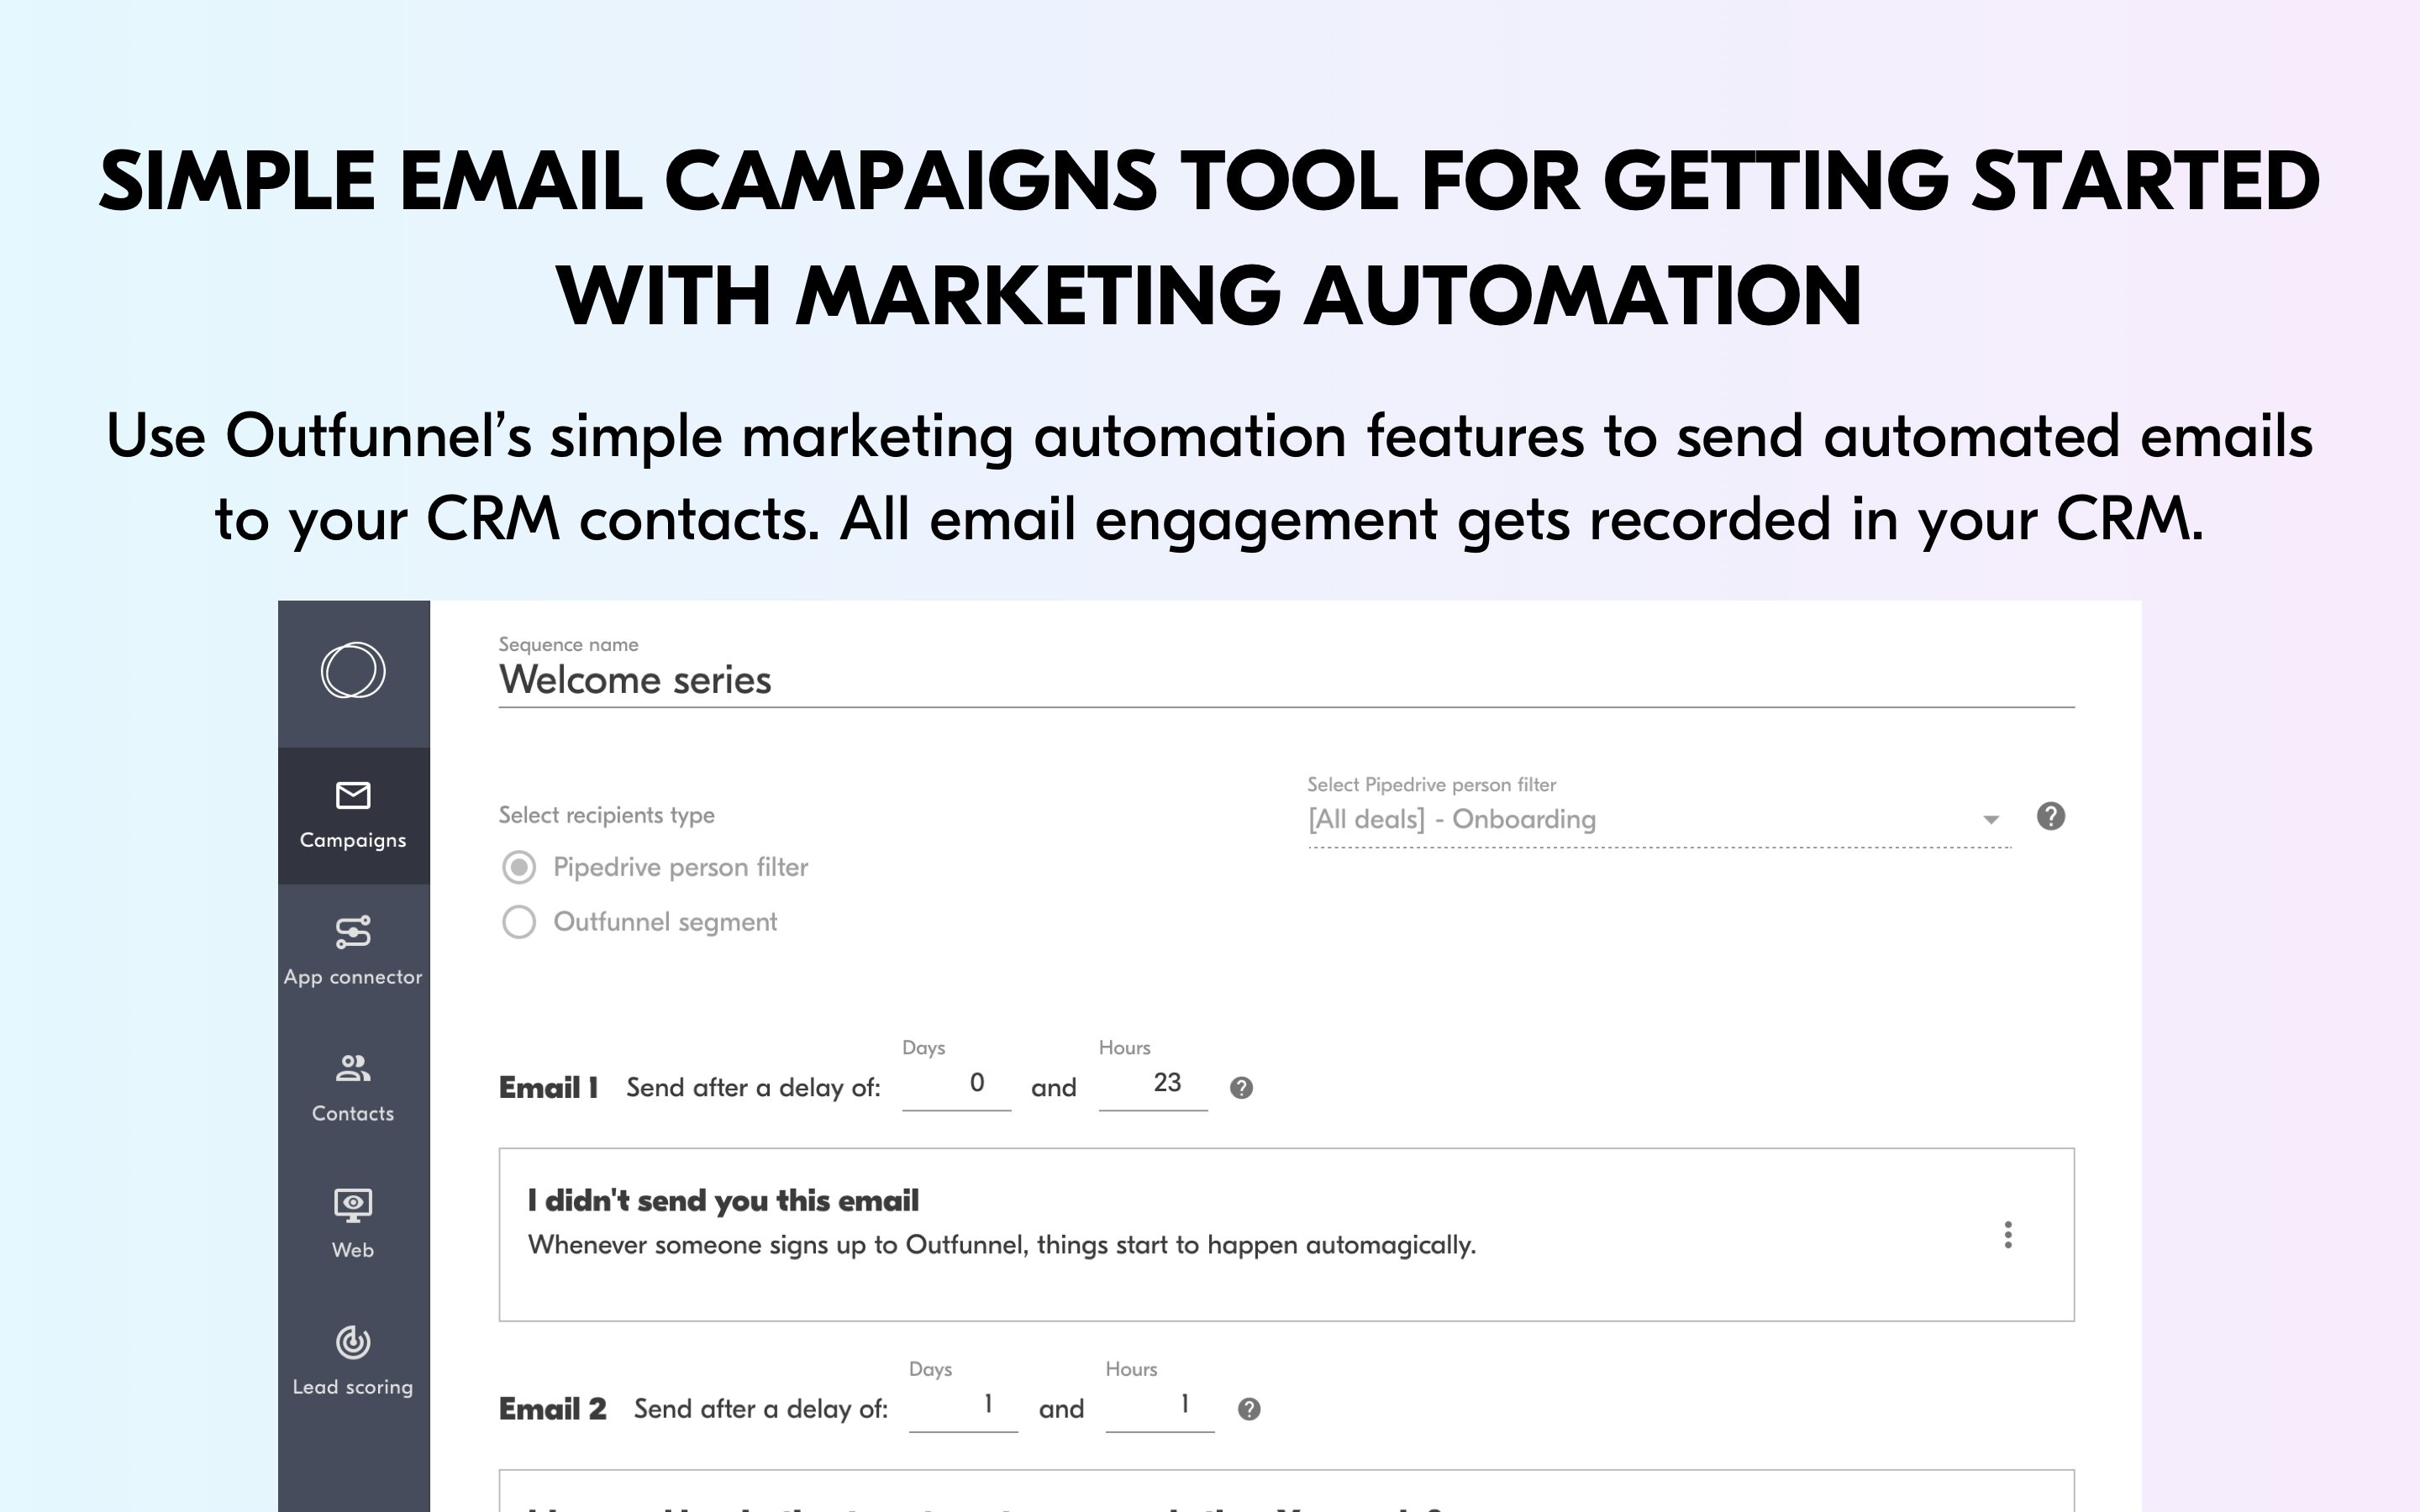 Finally, our simple email campaigns tool is great for getting started with marketing automation in sync with your CRM.